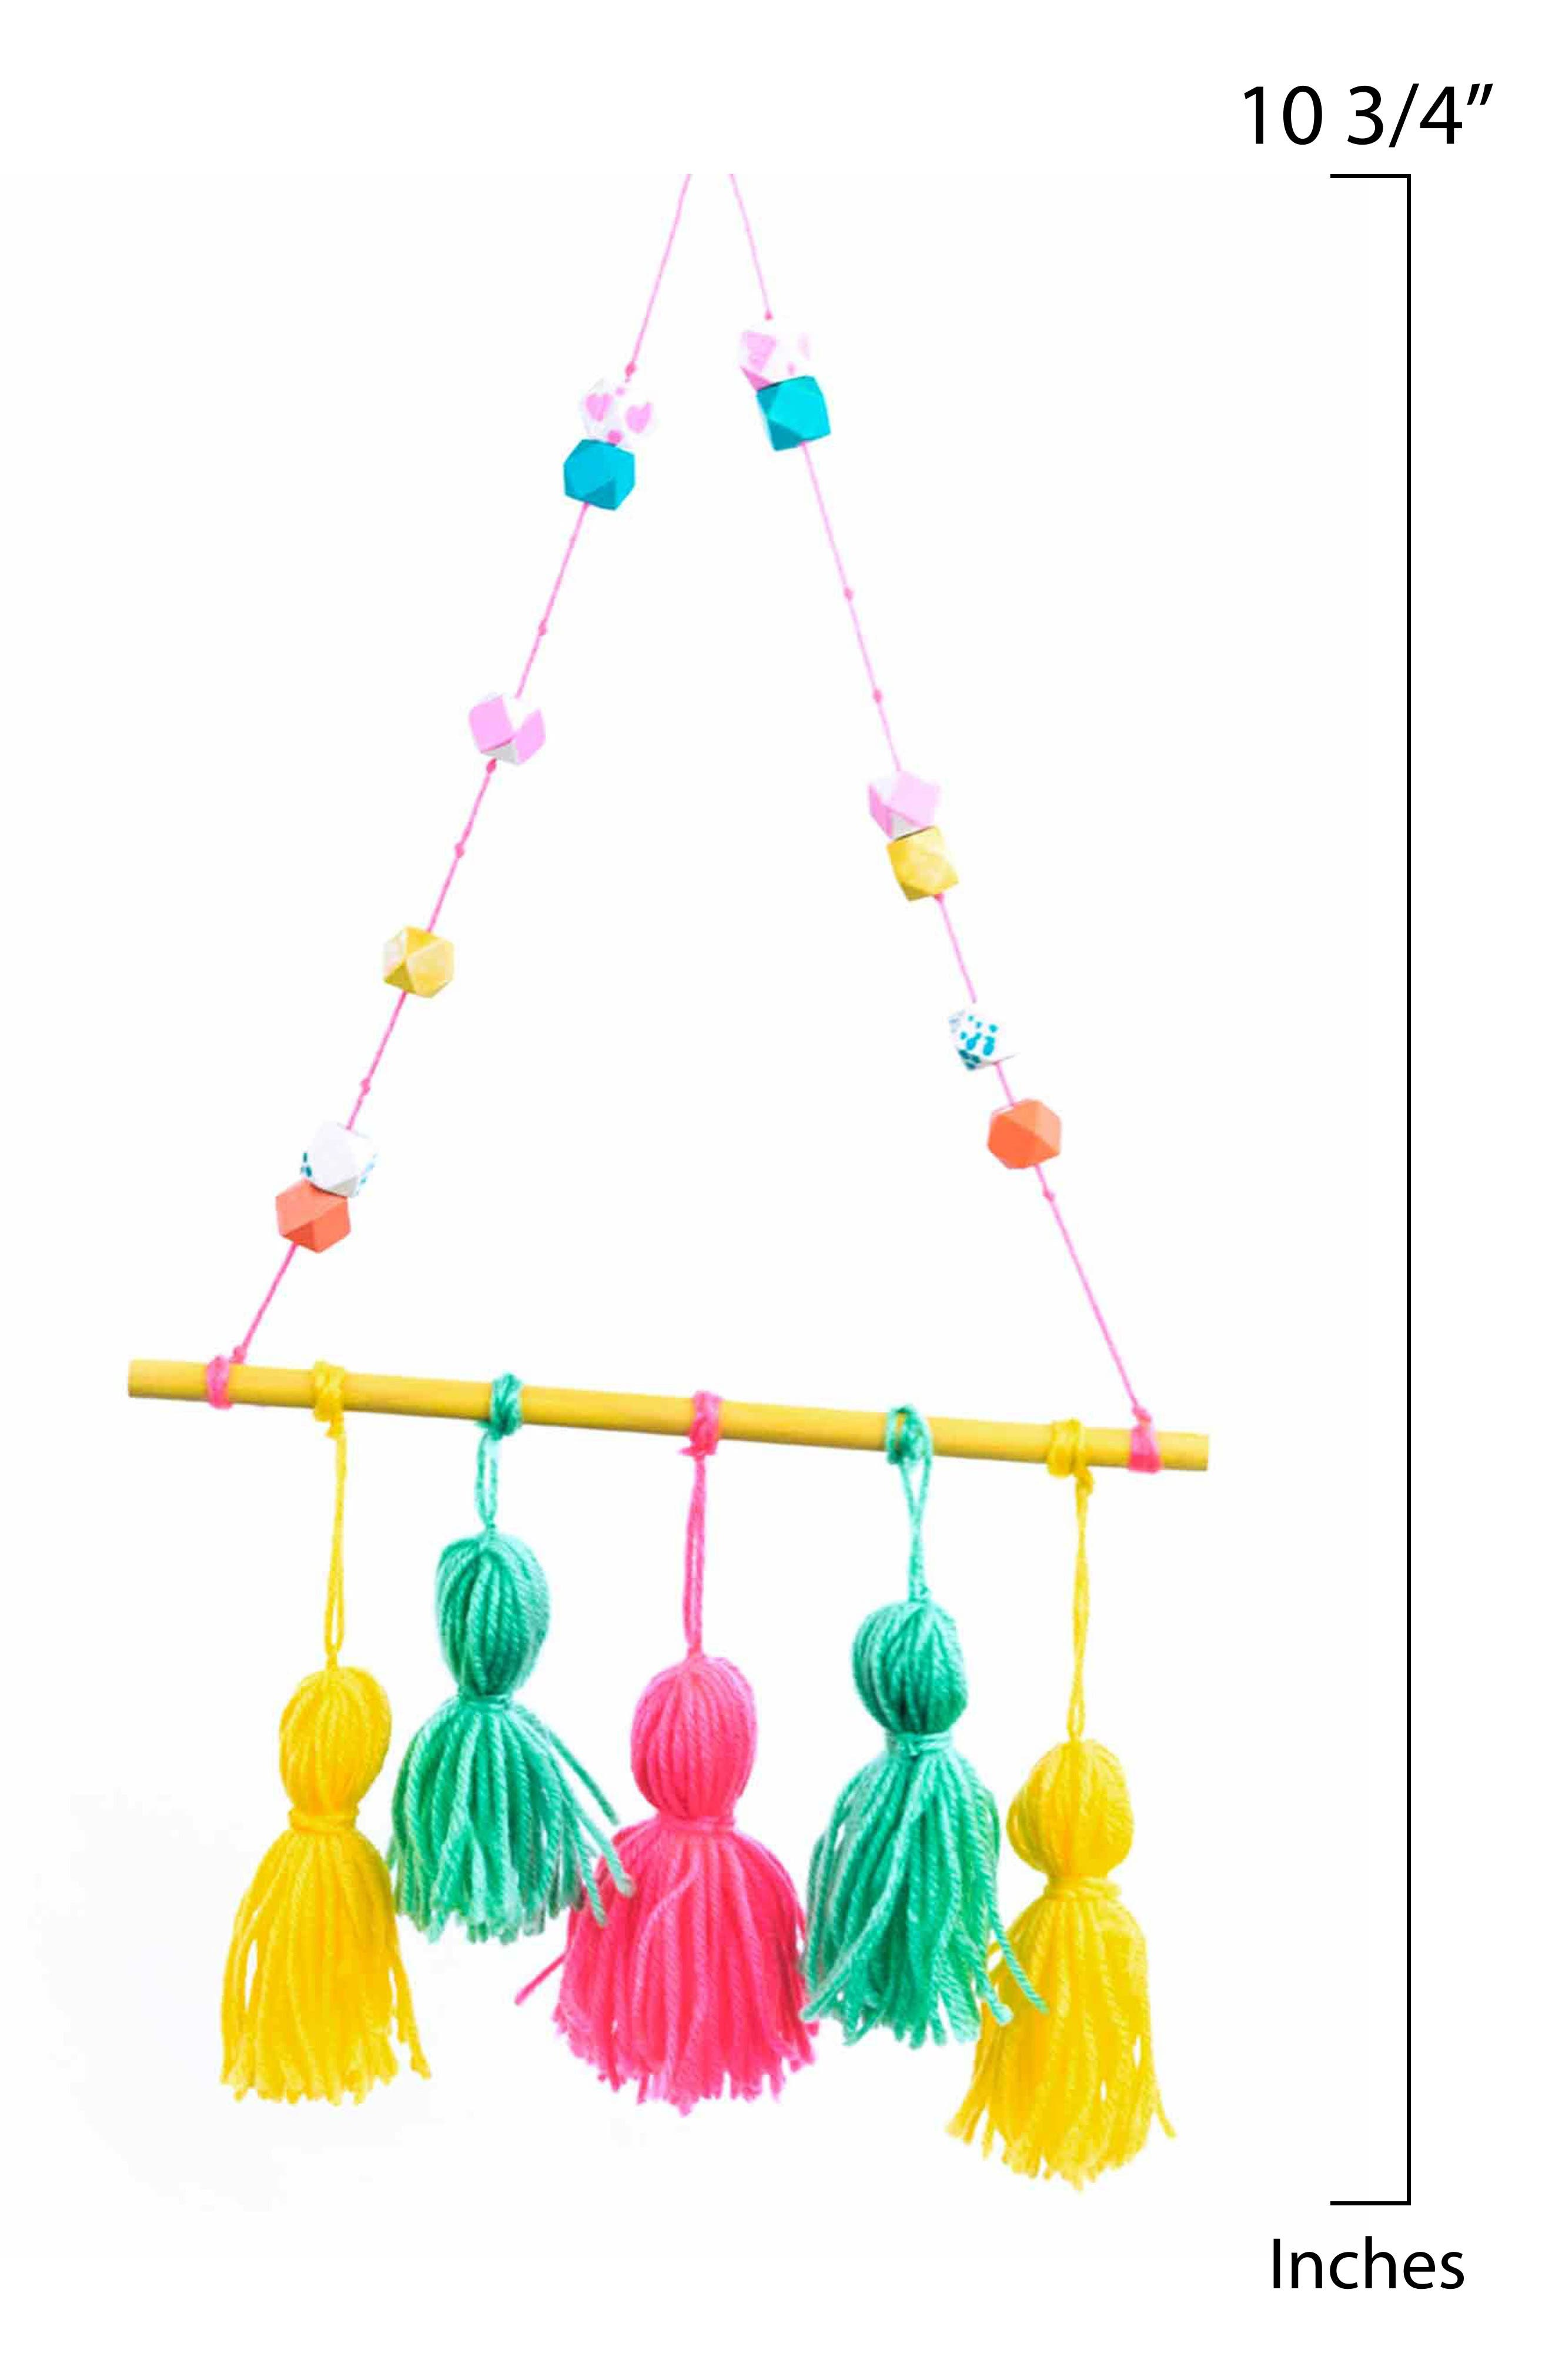 Make Your Own Tassel Wall Hanging,                             Alternate thumbnail 2, color,                             250